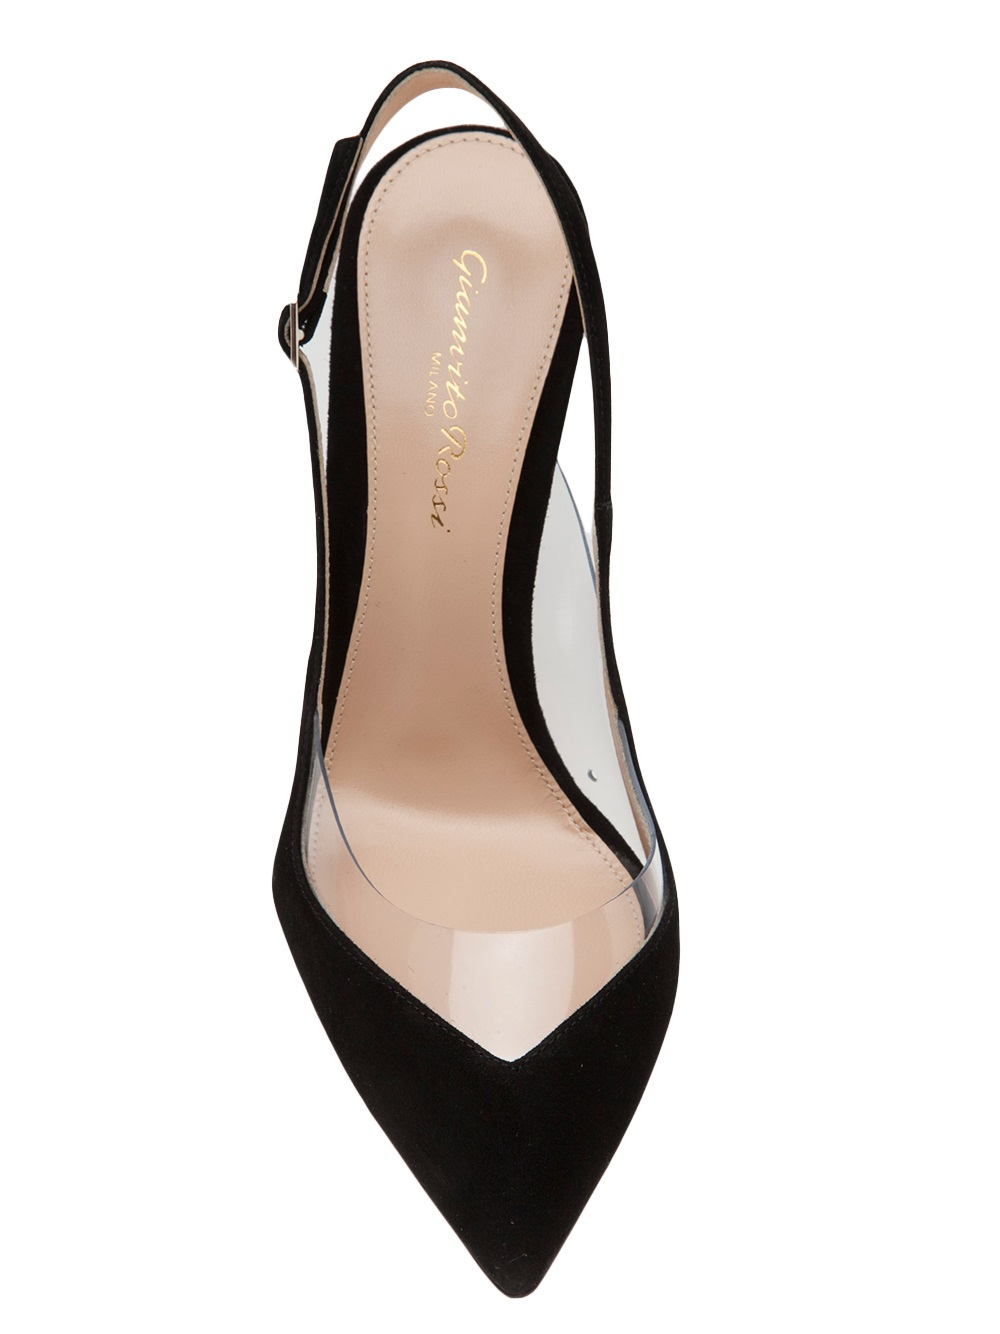 Gianvito rossi Slingback Kitten Heel in Black | Lyst